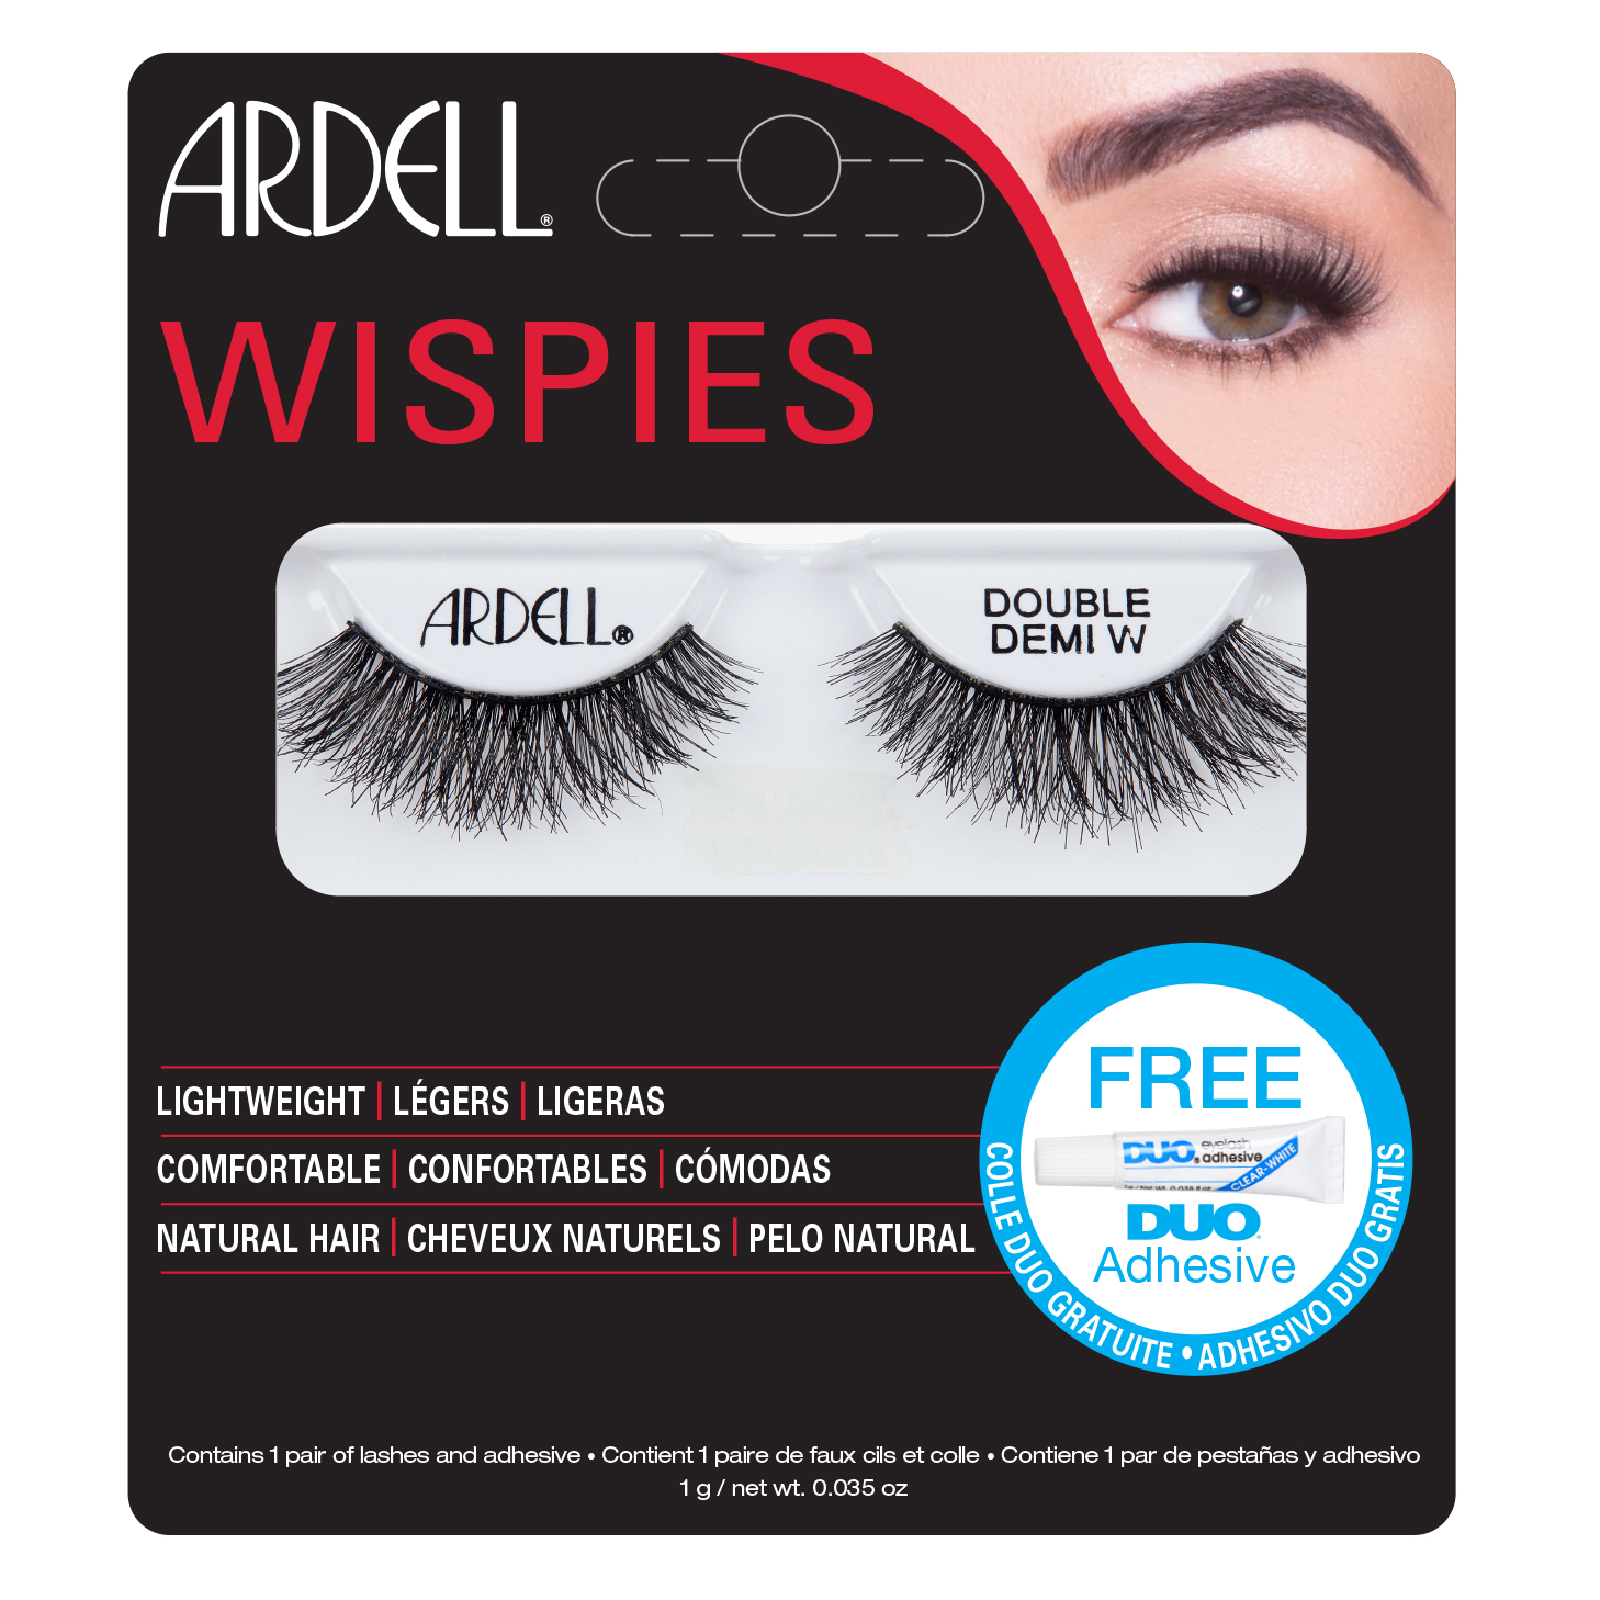 838ad52f113 Ardell Double Up Demi Wispies False Eyelashes - Black | Free Shipping |  Lookfantastic